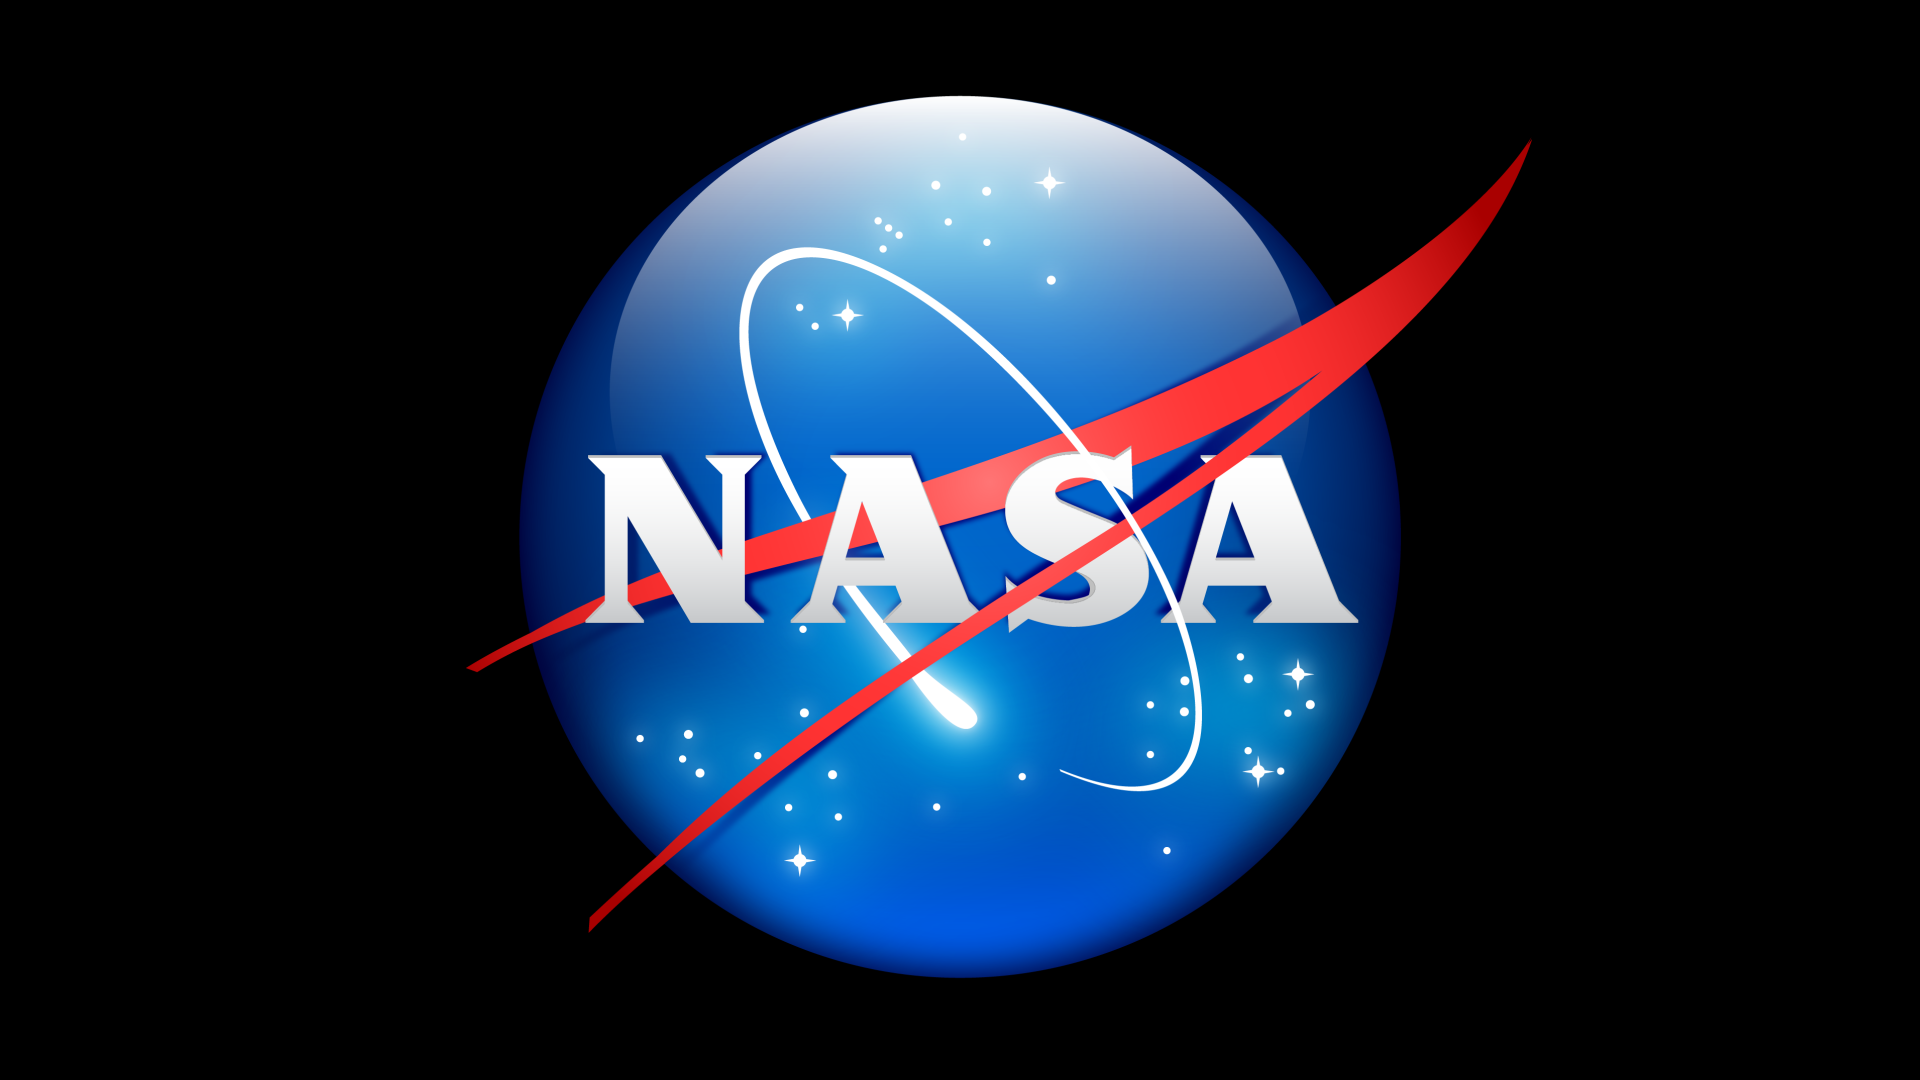 Nasa Logo wallpaper download free